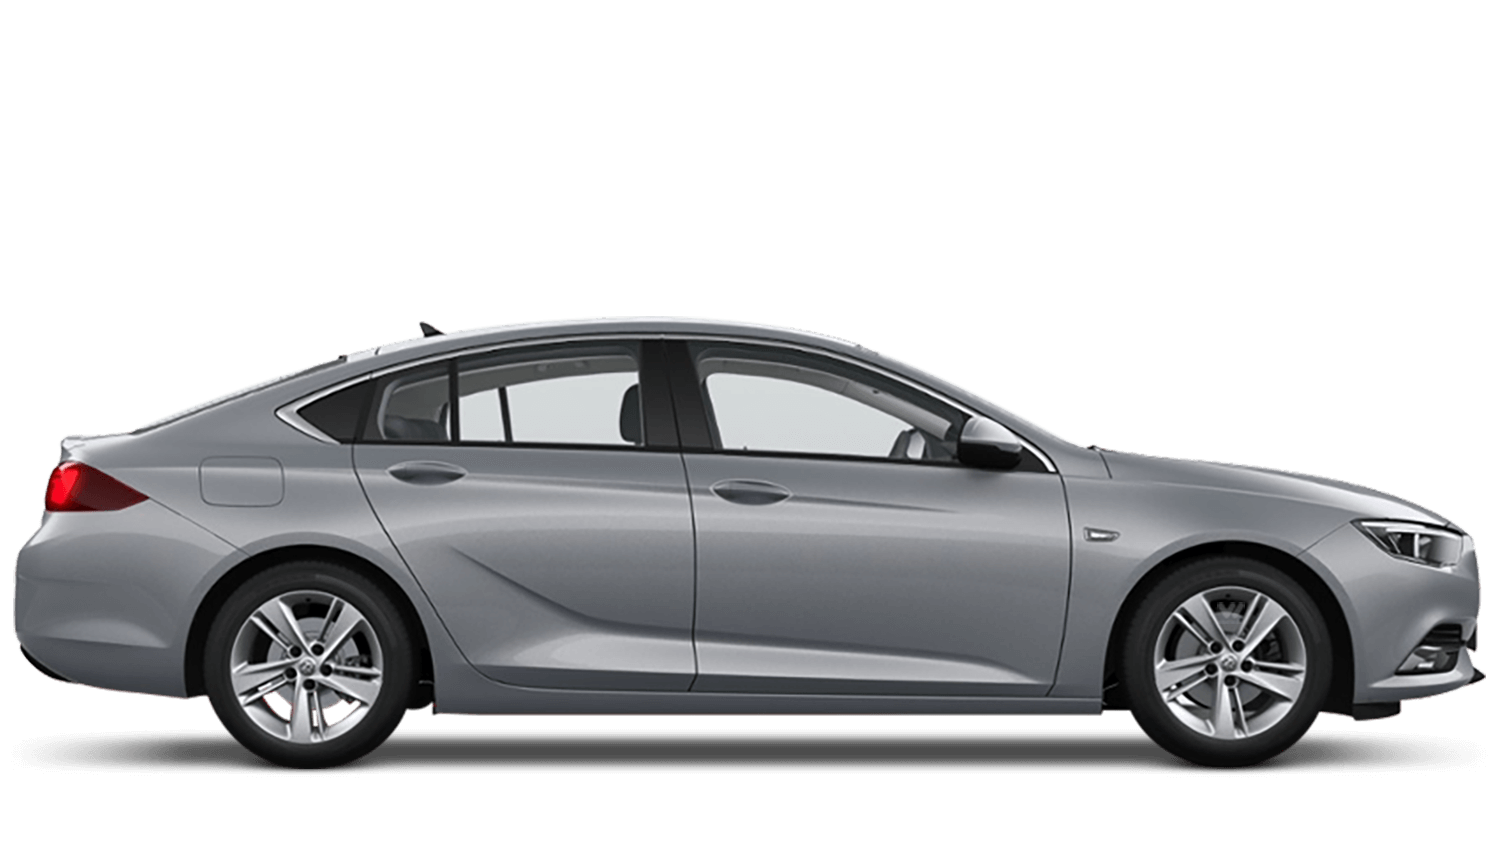 Insignia Grand Sport Local Business Offers